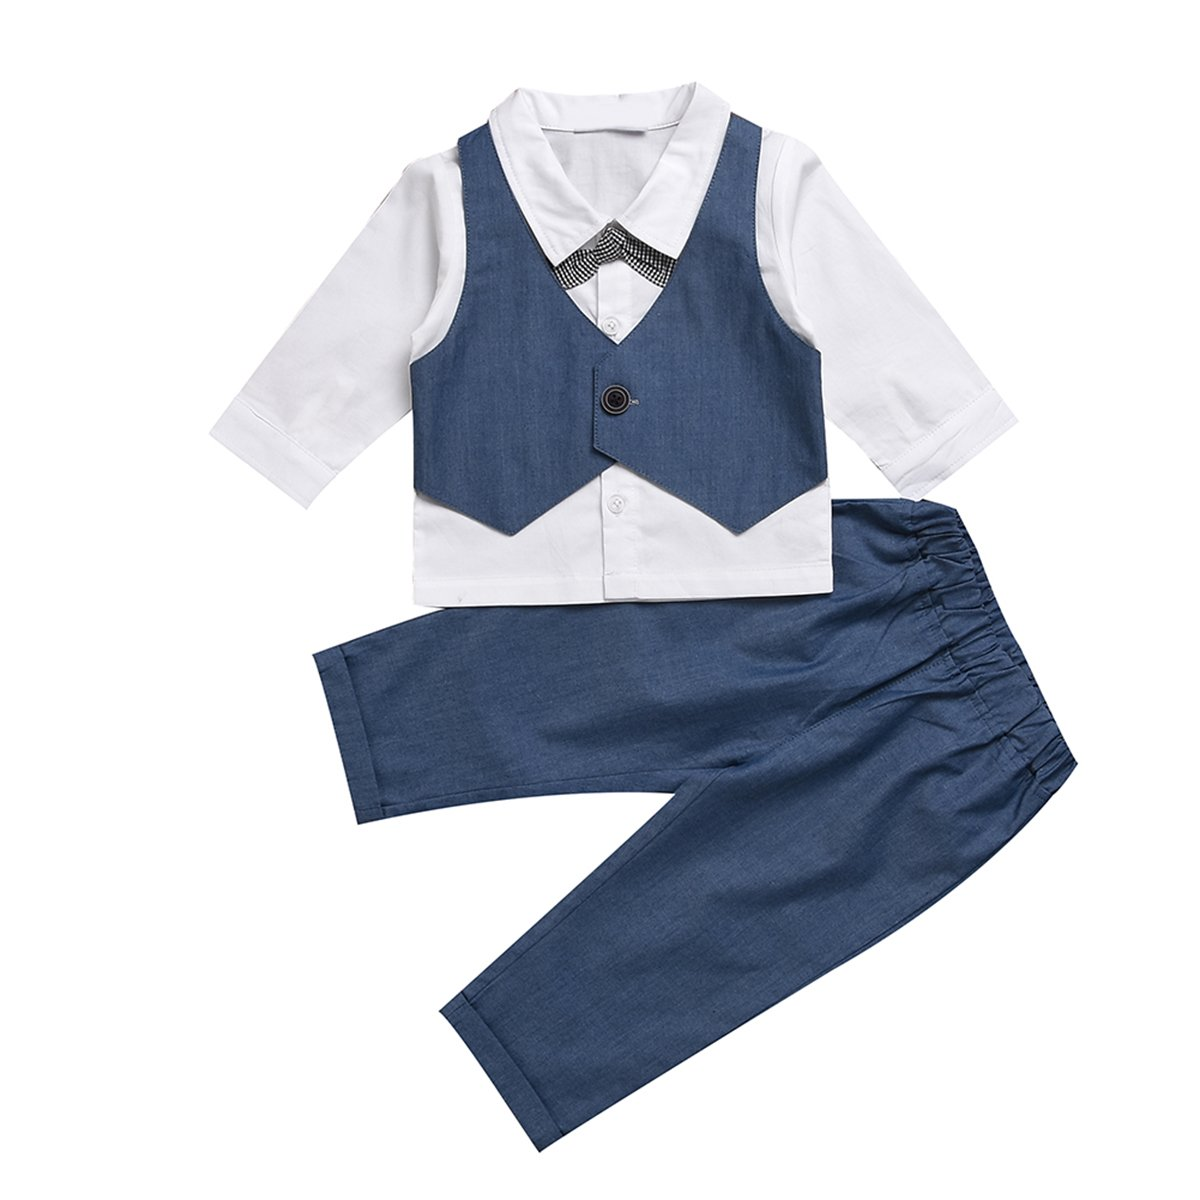 Puseky Baby Boys Gentleman Suit Bow Tie Shirt + Pants Formal Outfit Clothes Set (6-12 Months, White+Blue)